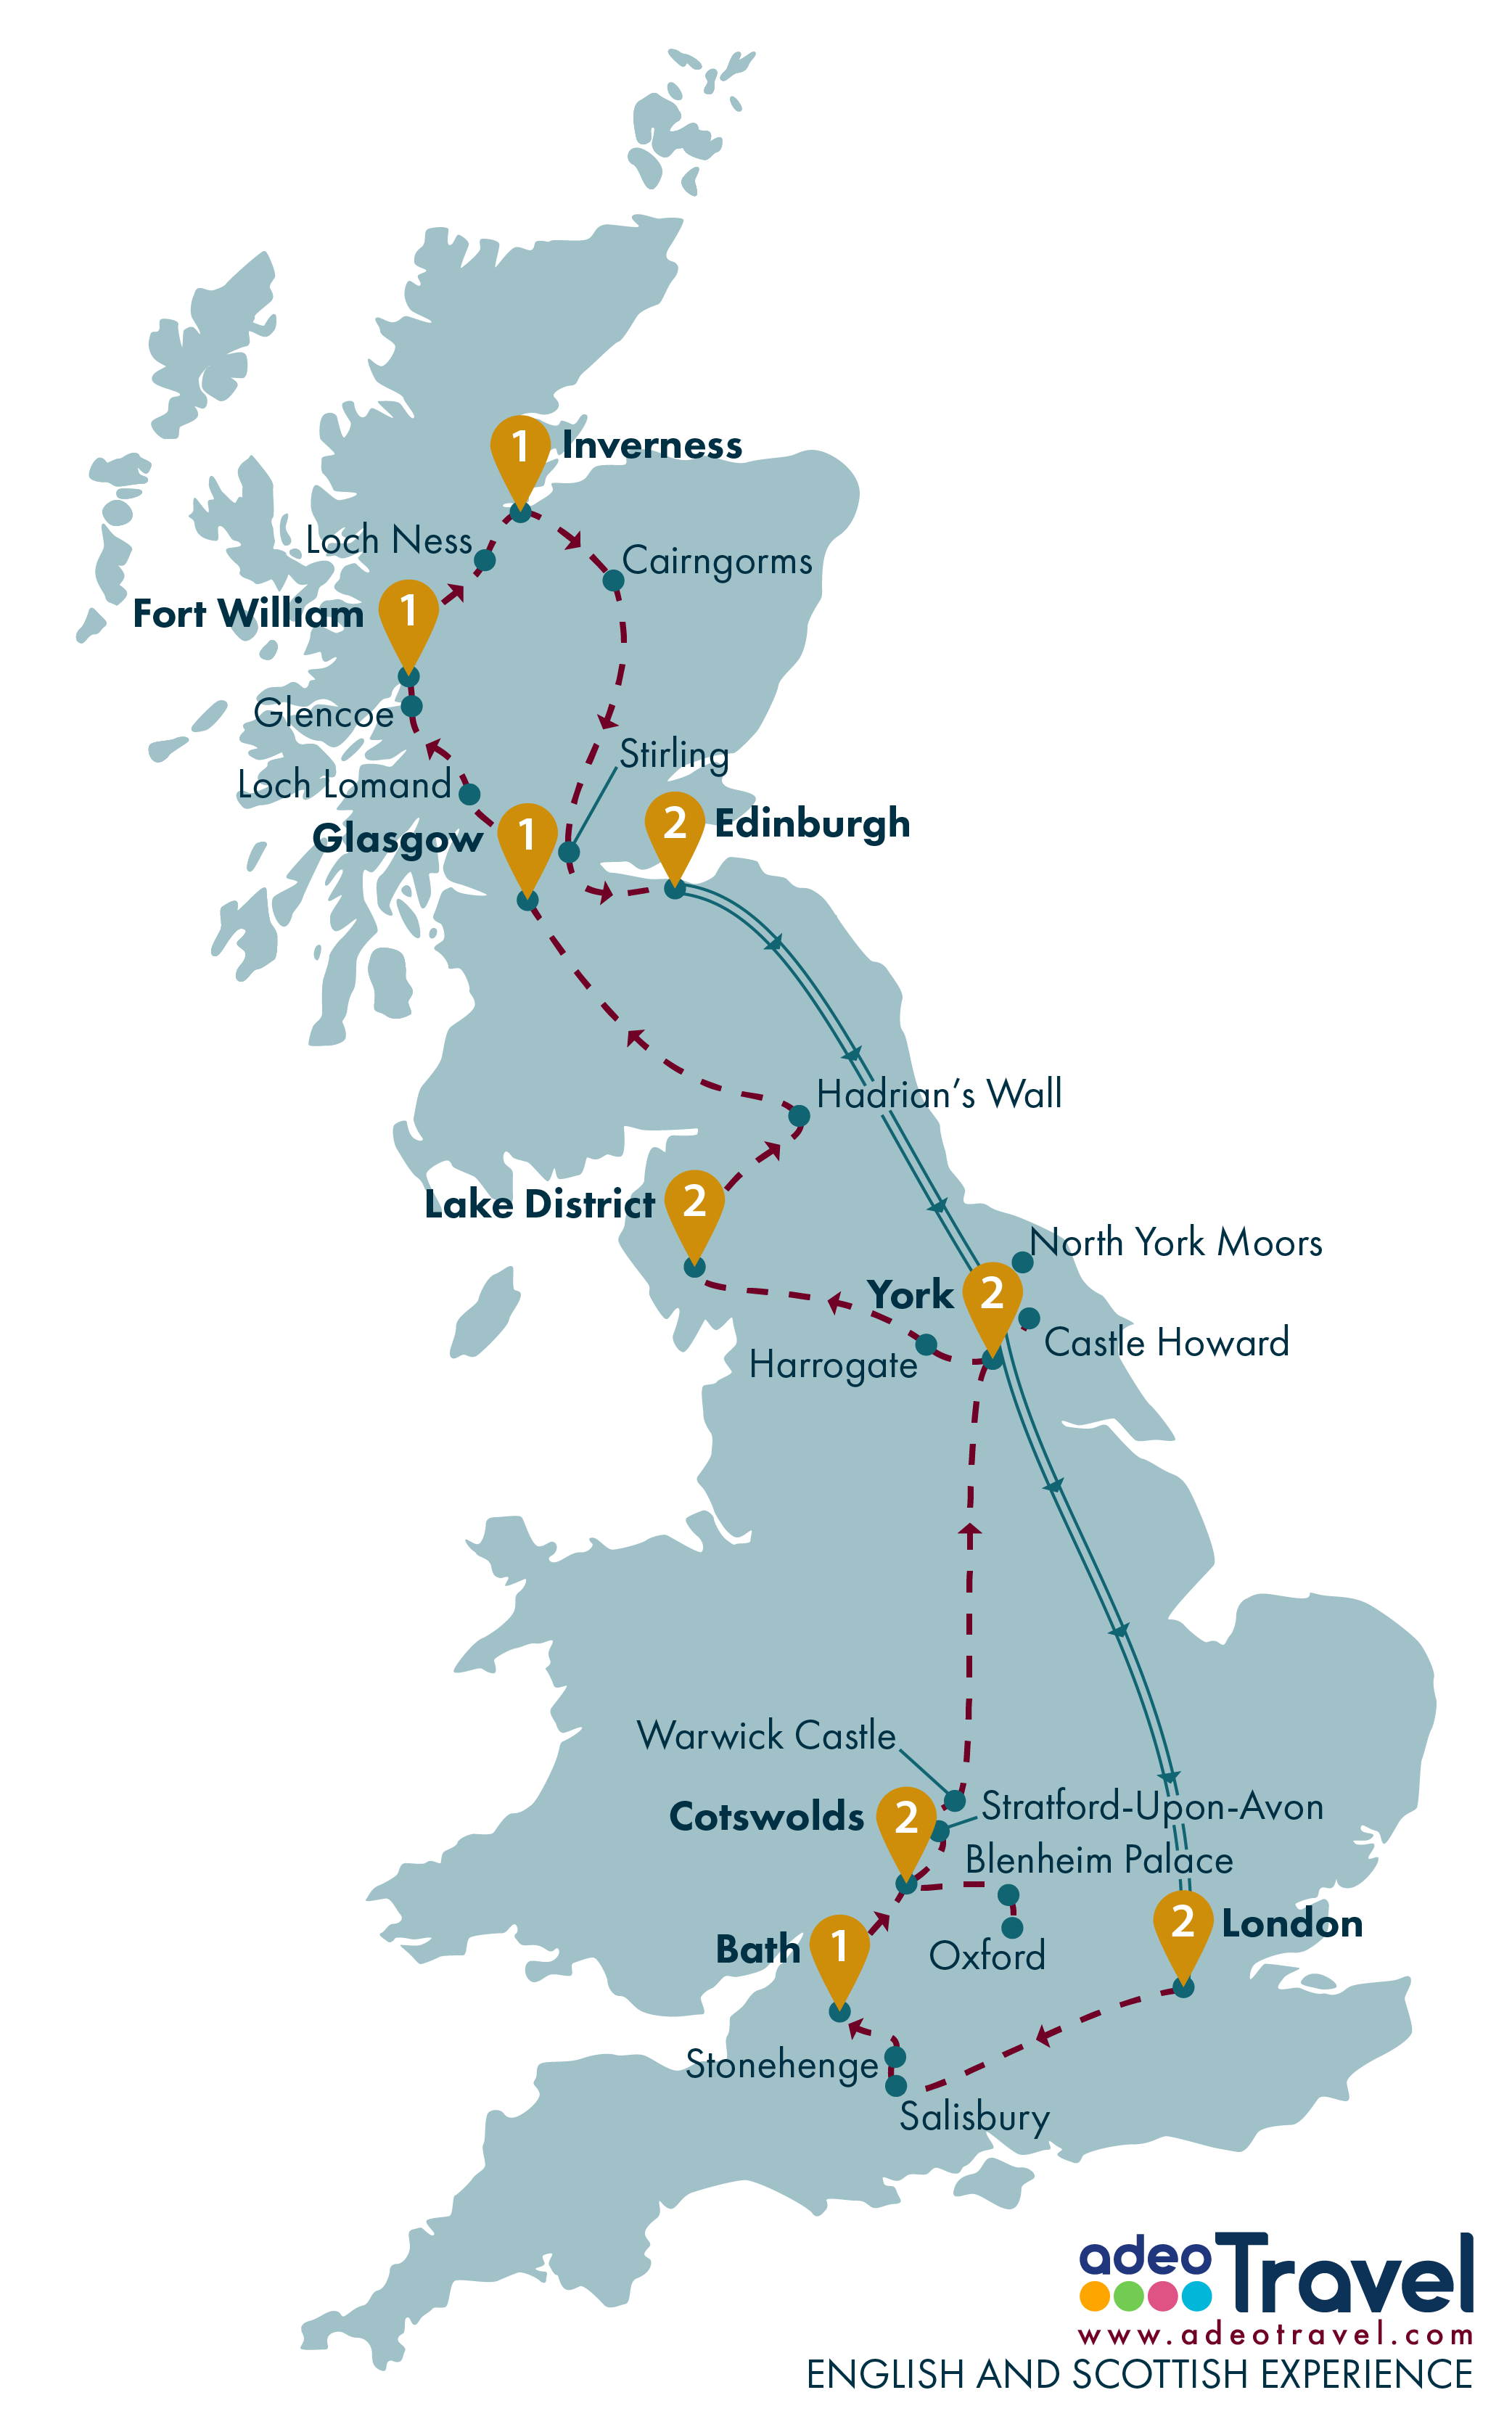 Tour Map - English and Scottish Experience